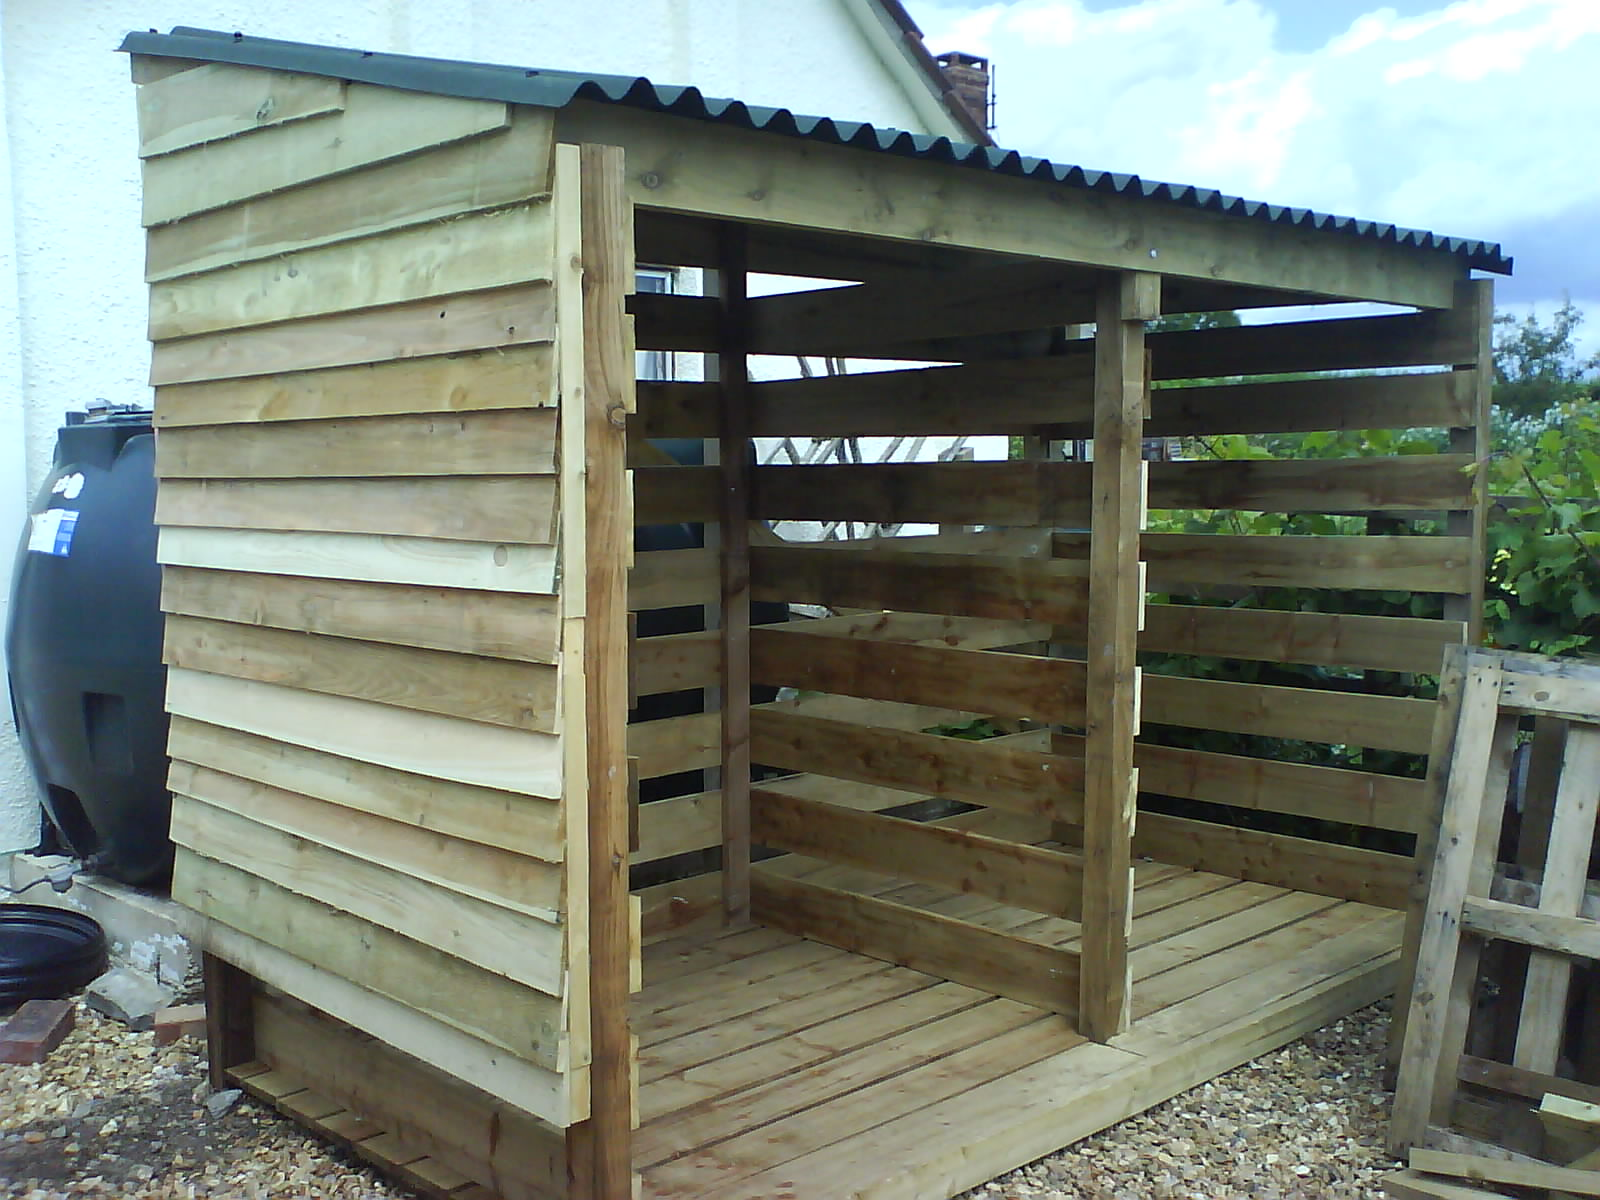 How to Build a Log Shed Begins With Using the Proper Plans